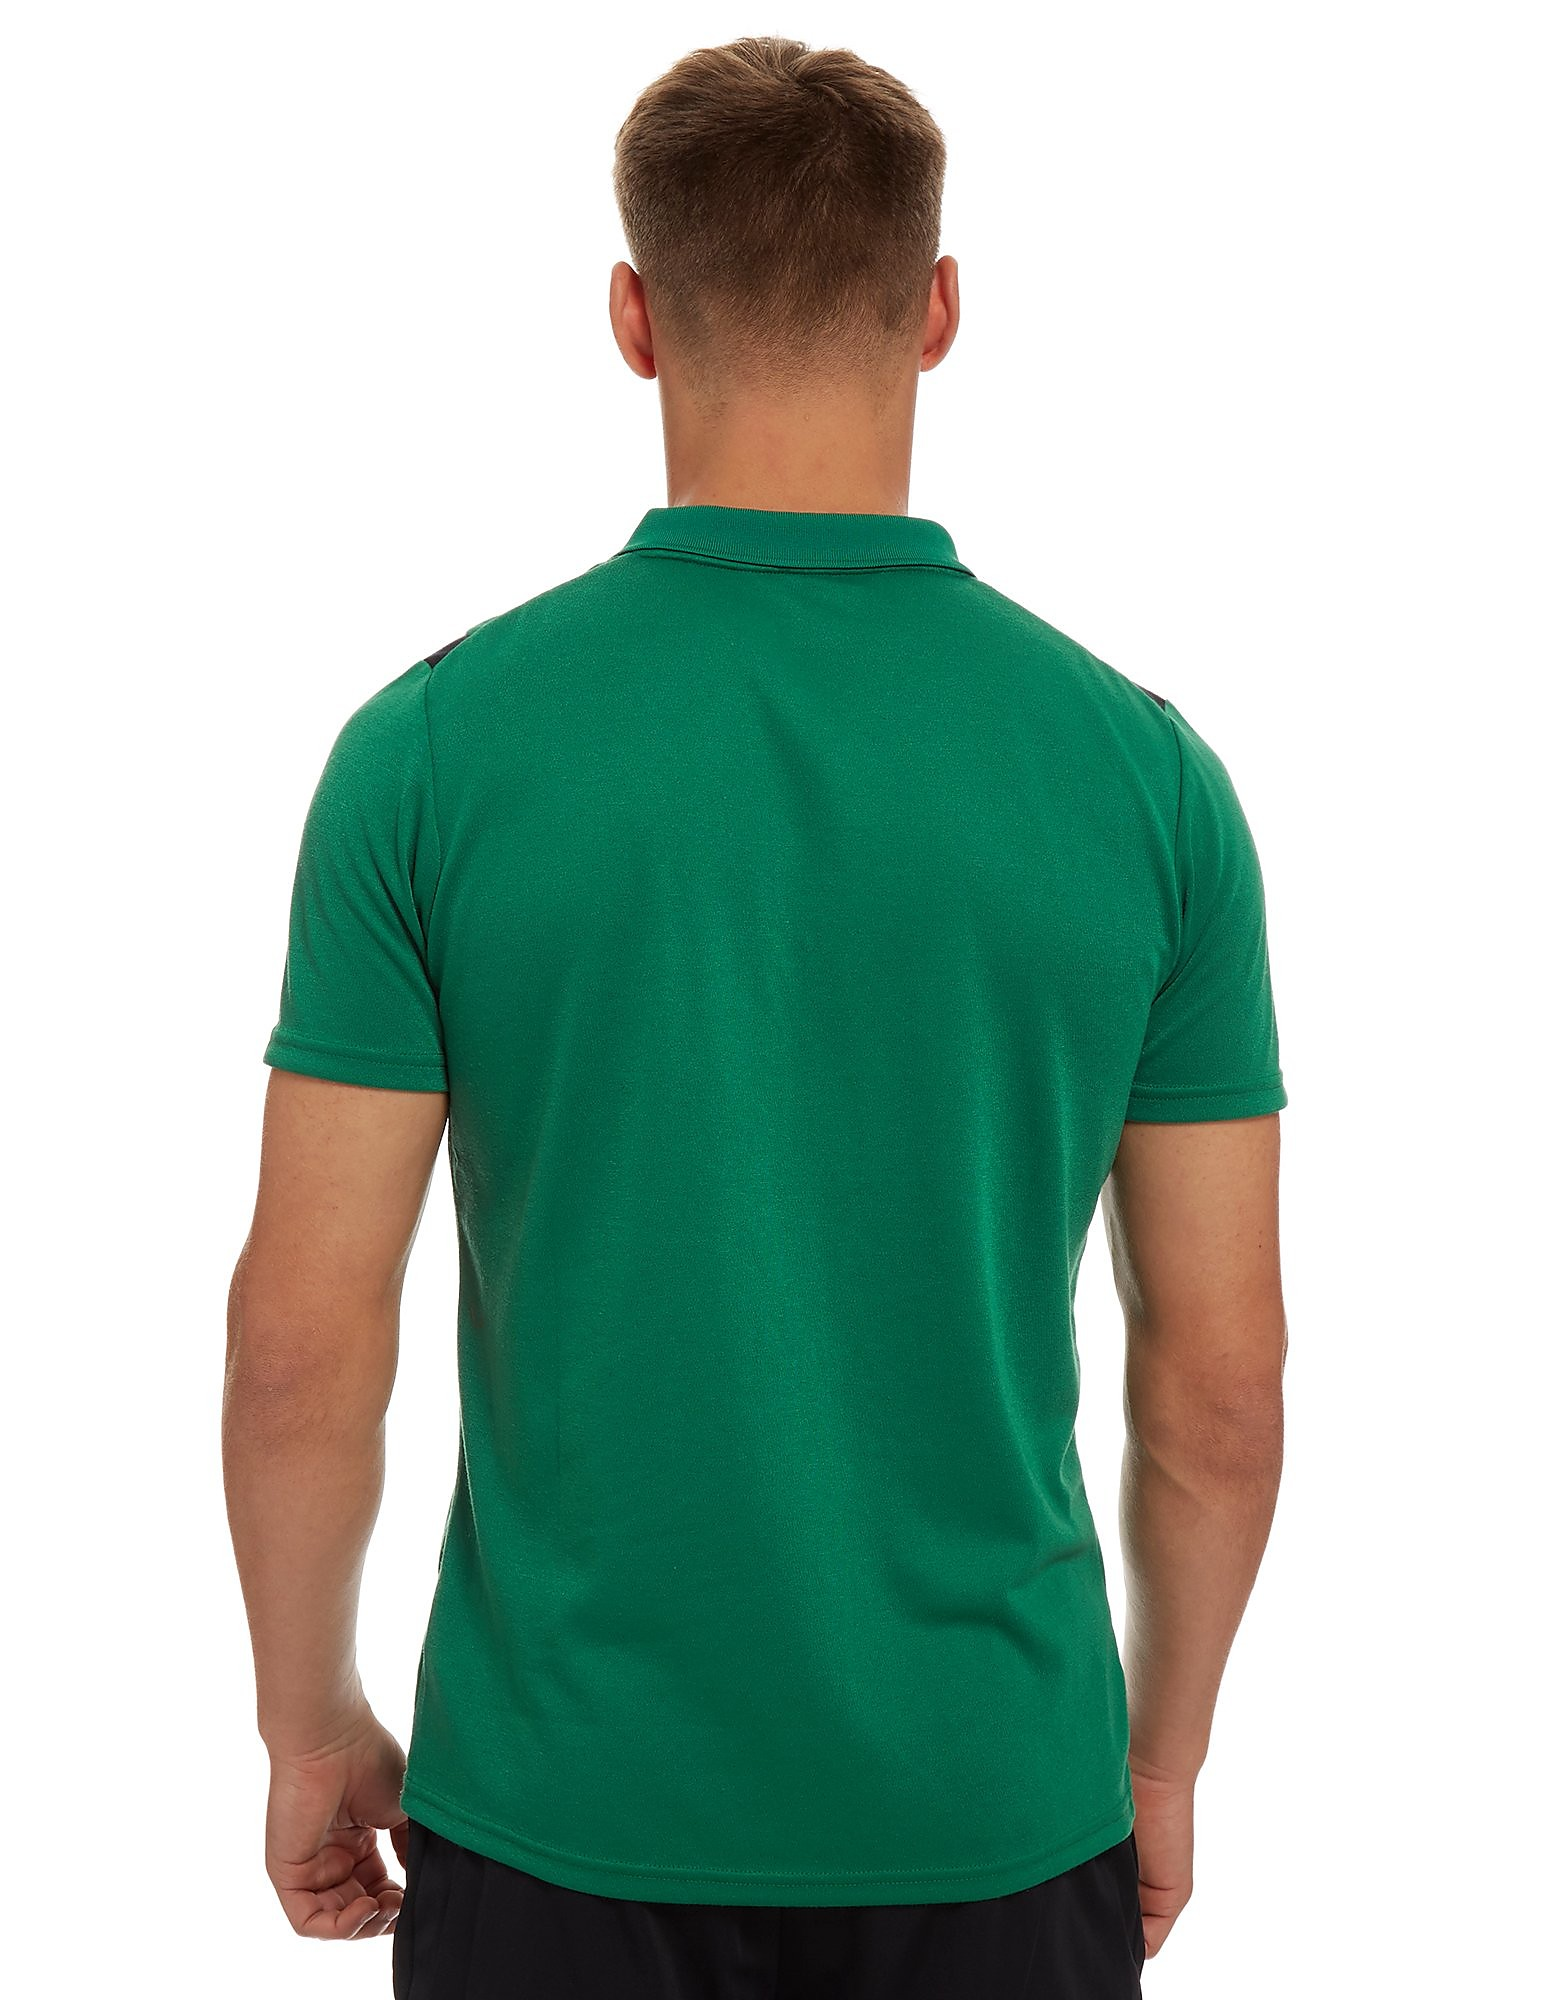 New Balance Celtic Polo Shirt PRE ORDER